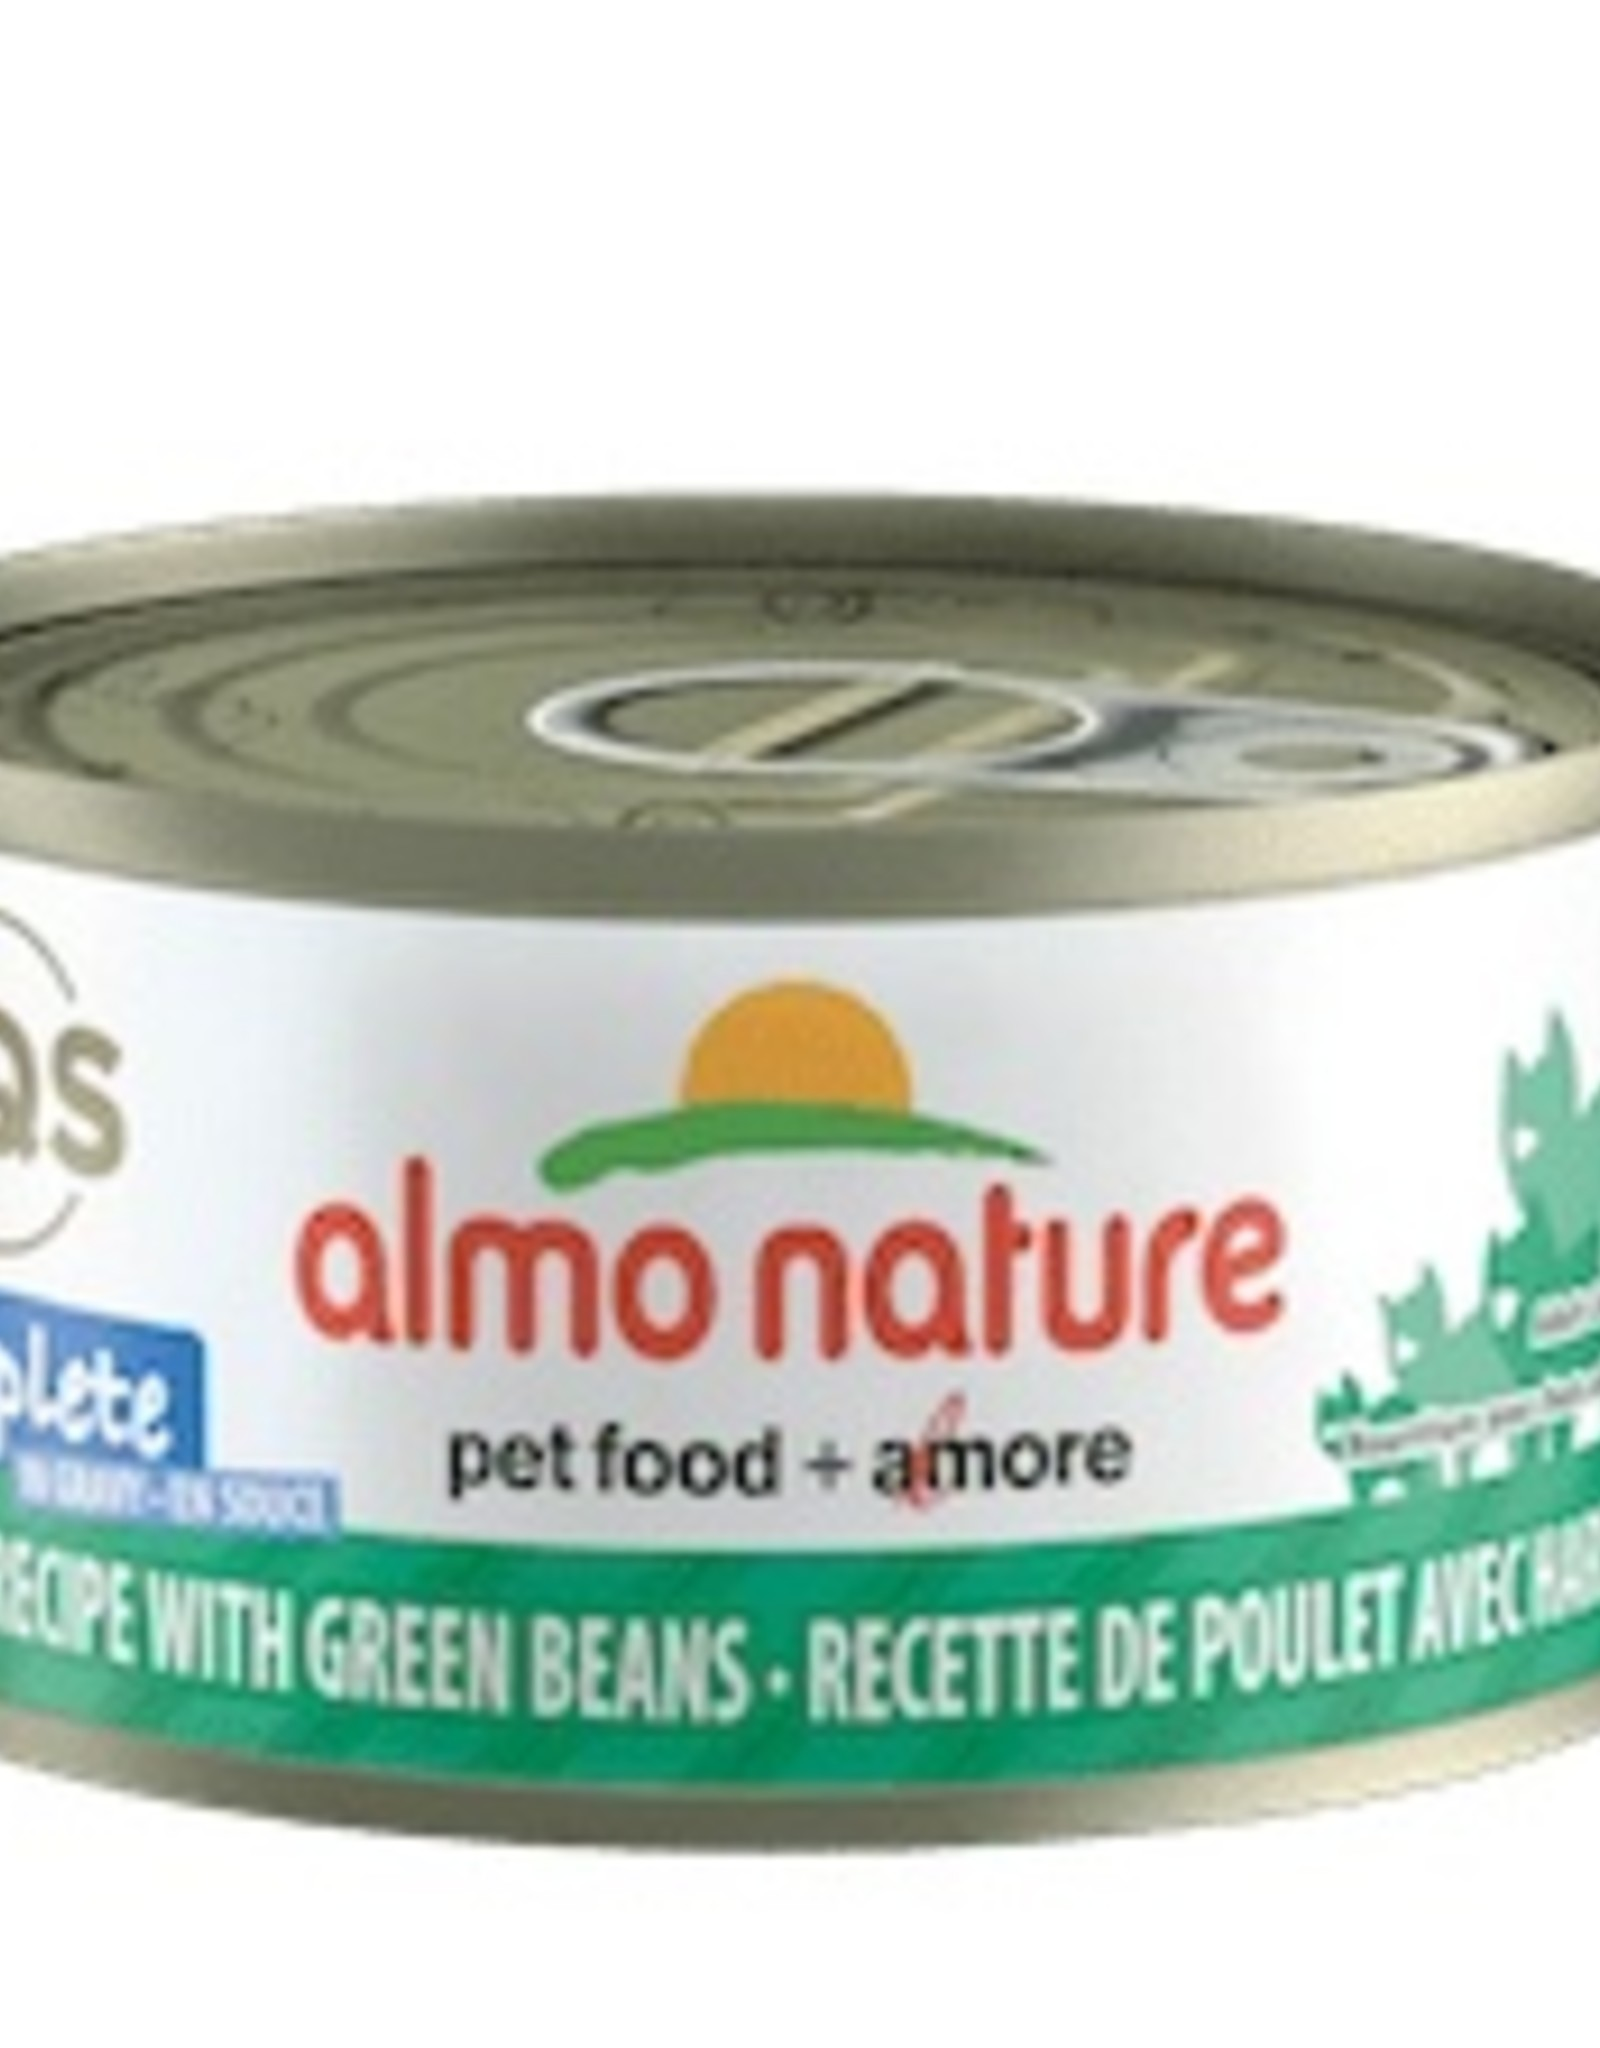 Almo Nature Almo Nature Chicken Green Bean 2.47oz